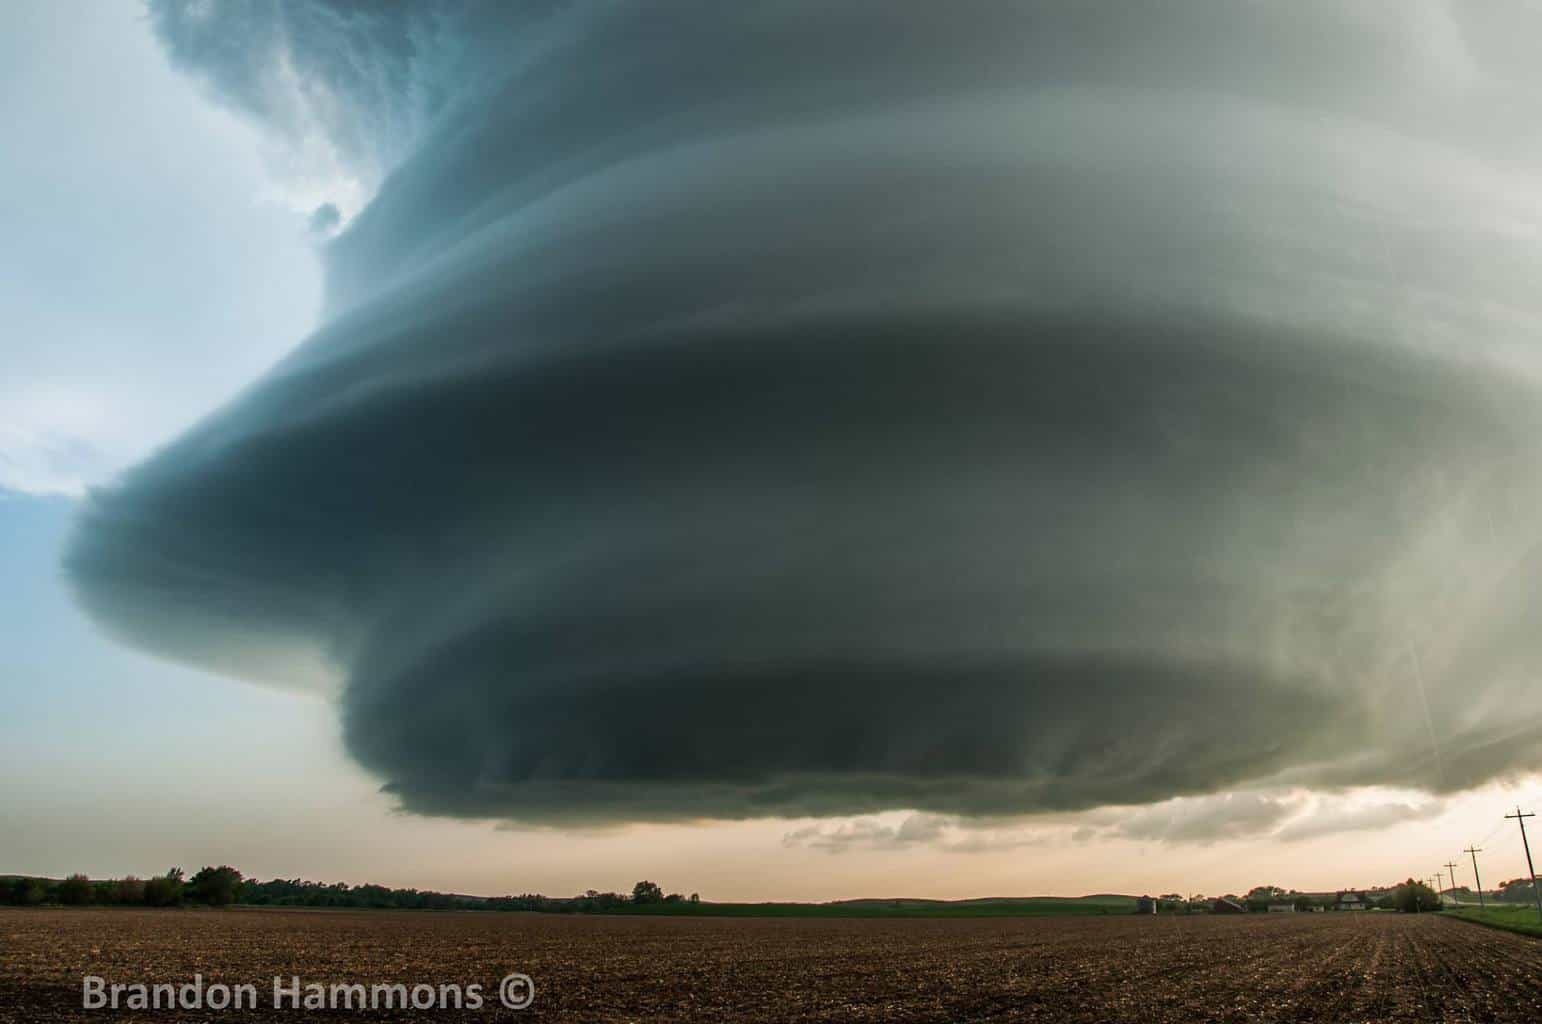 Hard to believe that nearly 5 years have passed since this otherworldly storm hovered its way over Custer County, NE. Need a close encounter like this in my life again!! (5/26/13)